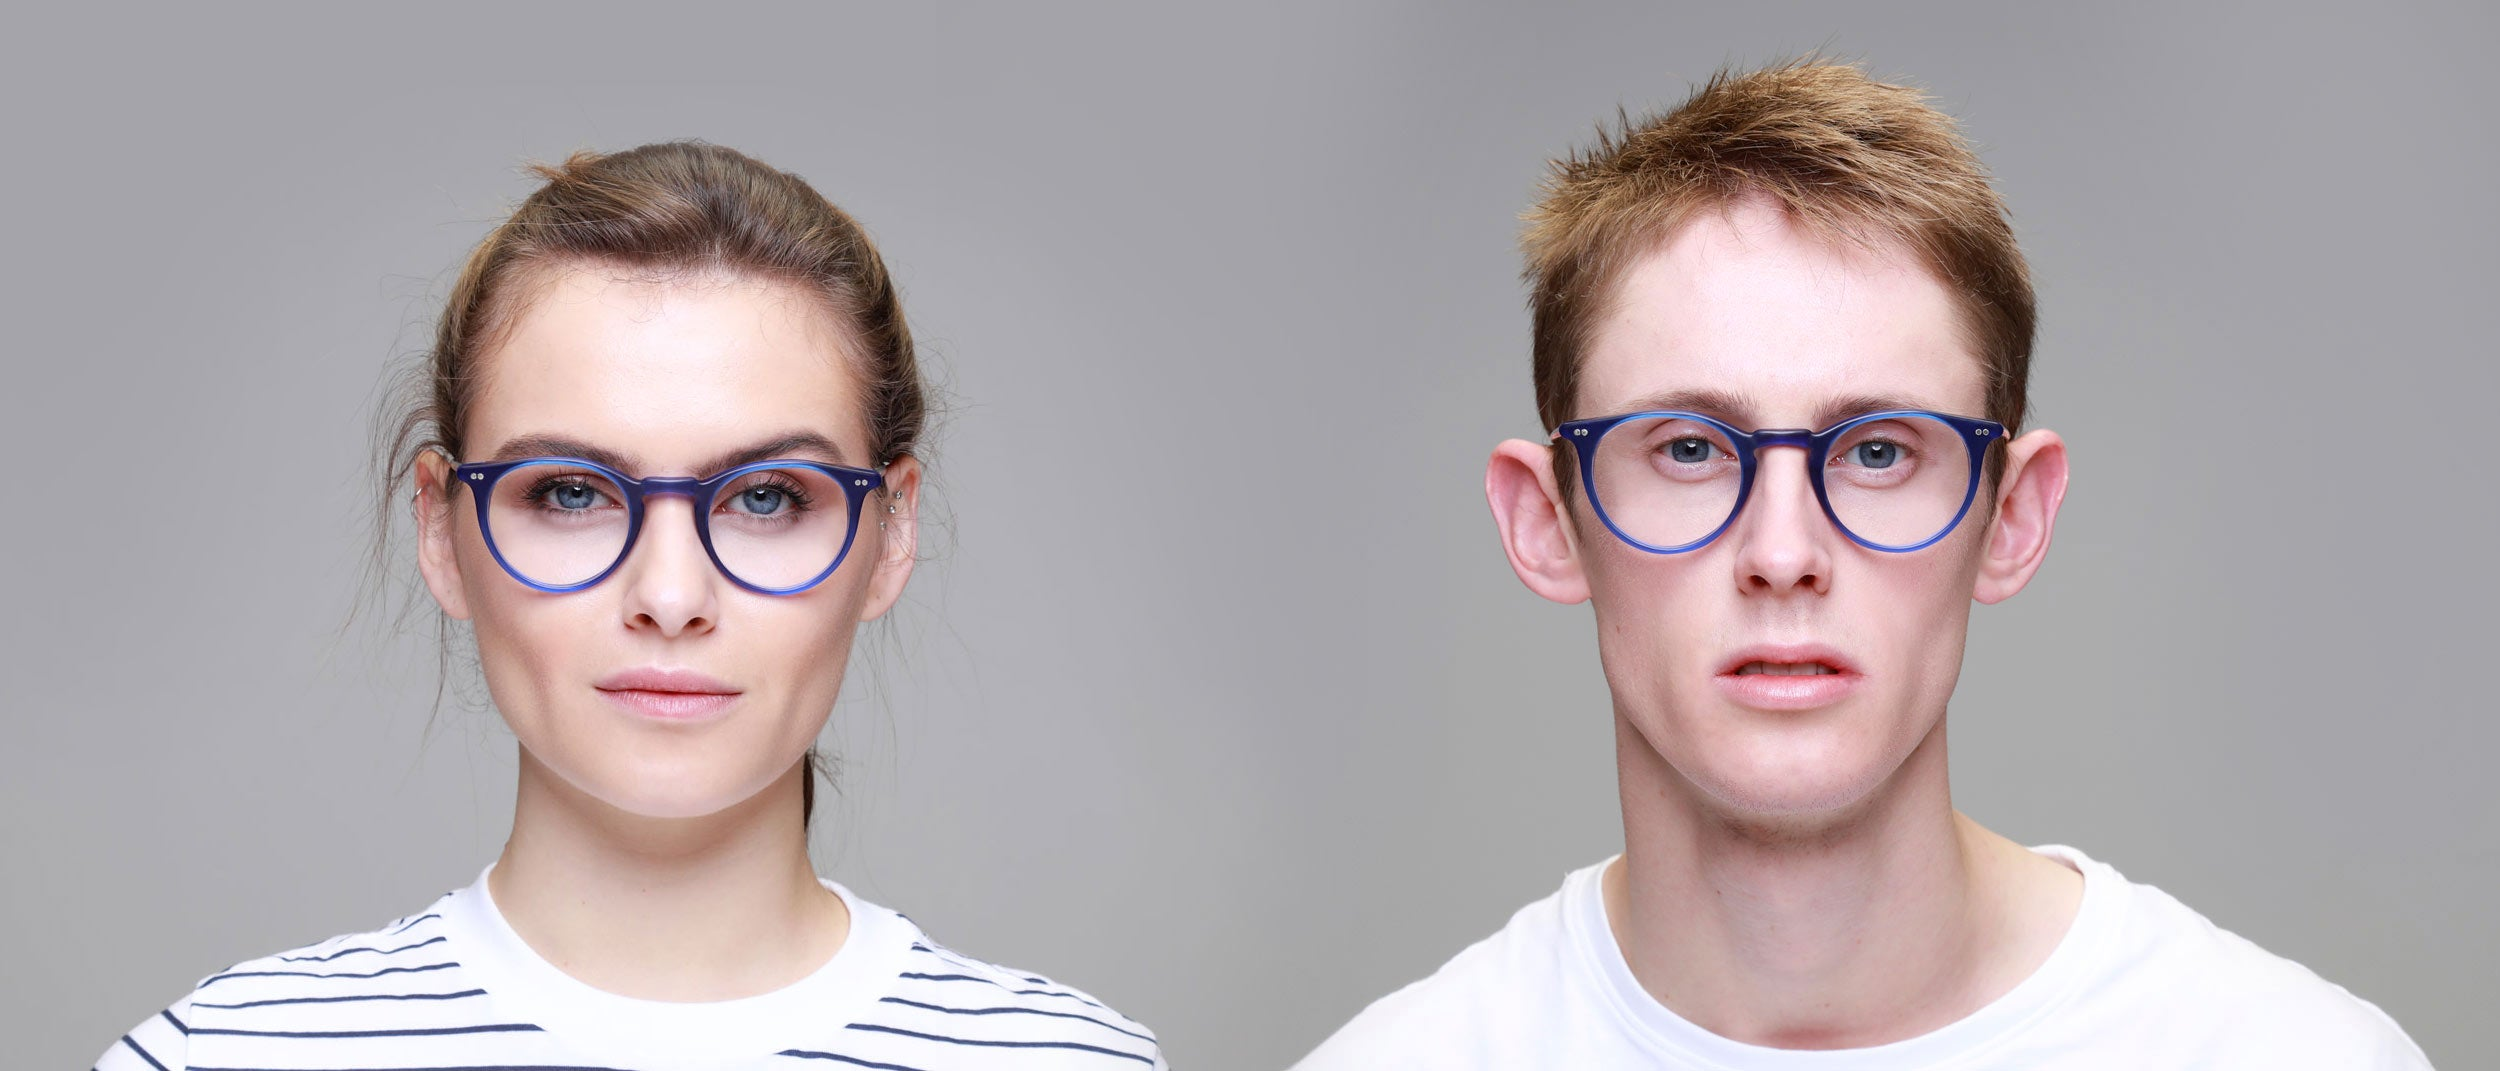 Man-and-Woman-Wearing-Varifocal-Round-Blue-frame-glasses